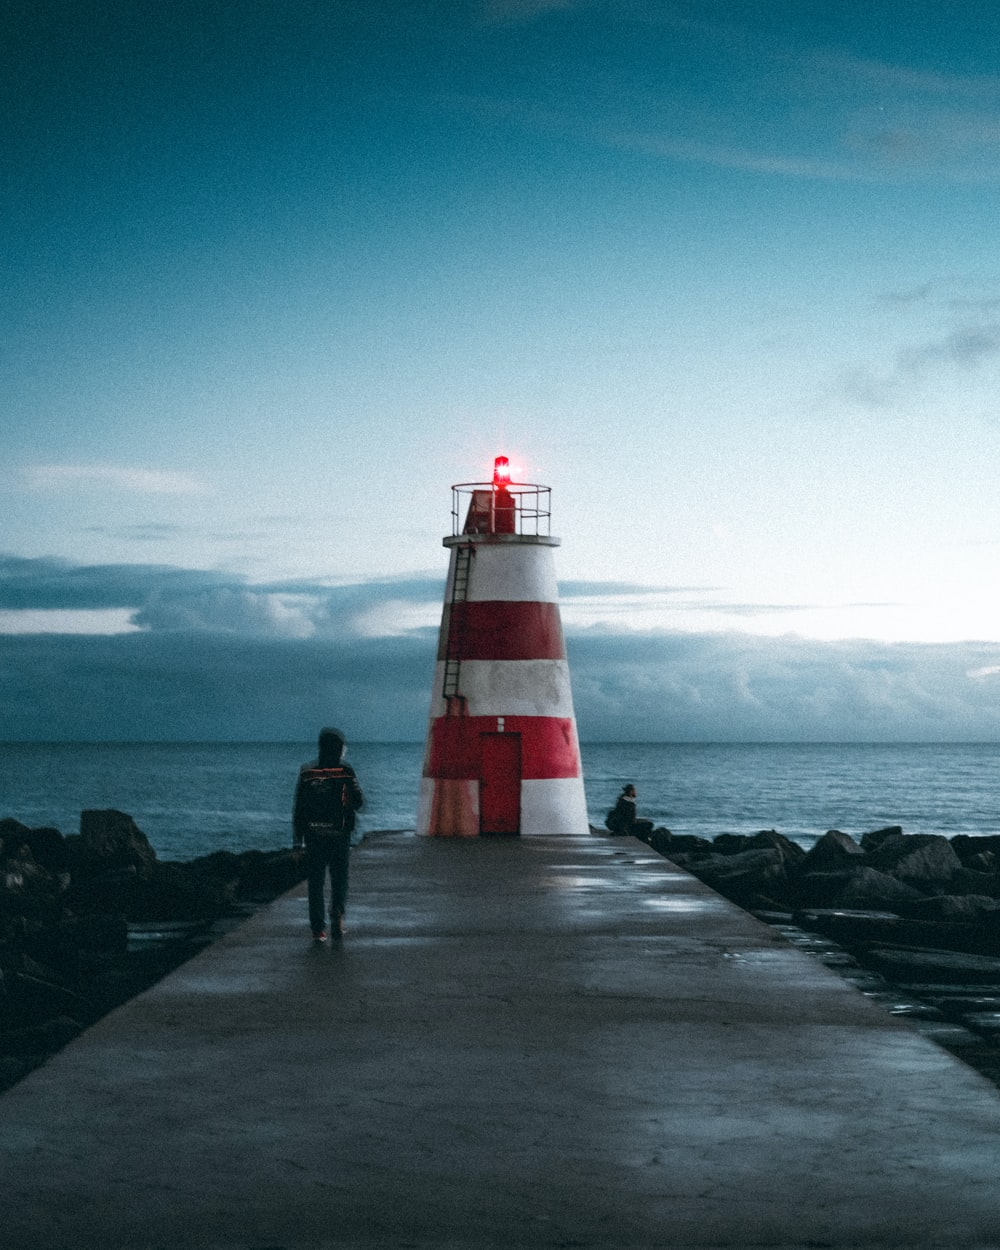 red and white lighthouse near body of water during daytime